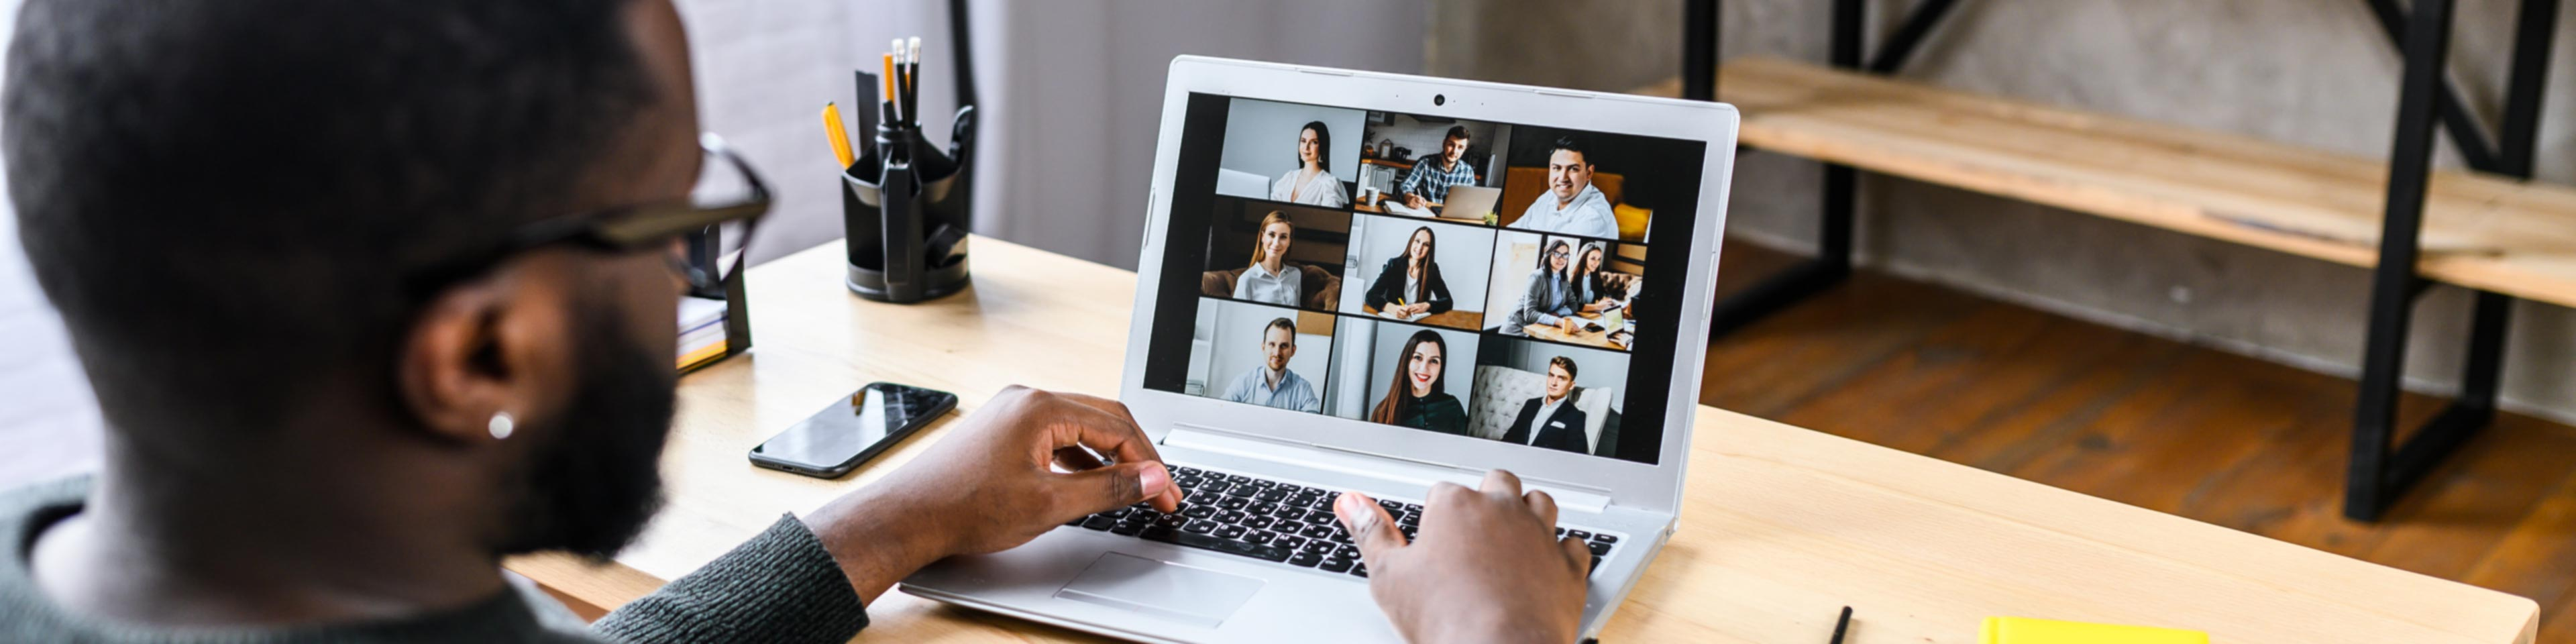 Business license requirements for remote workers